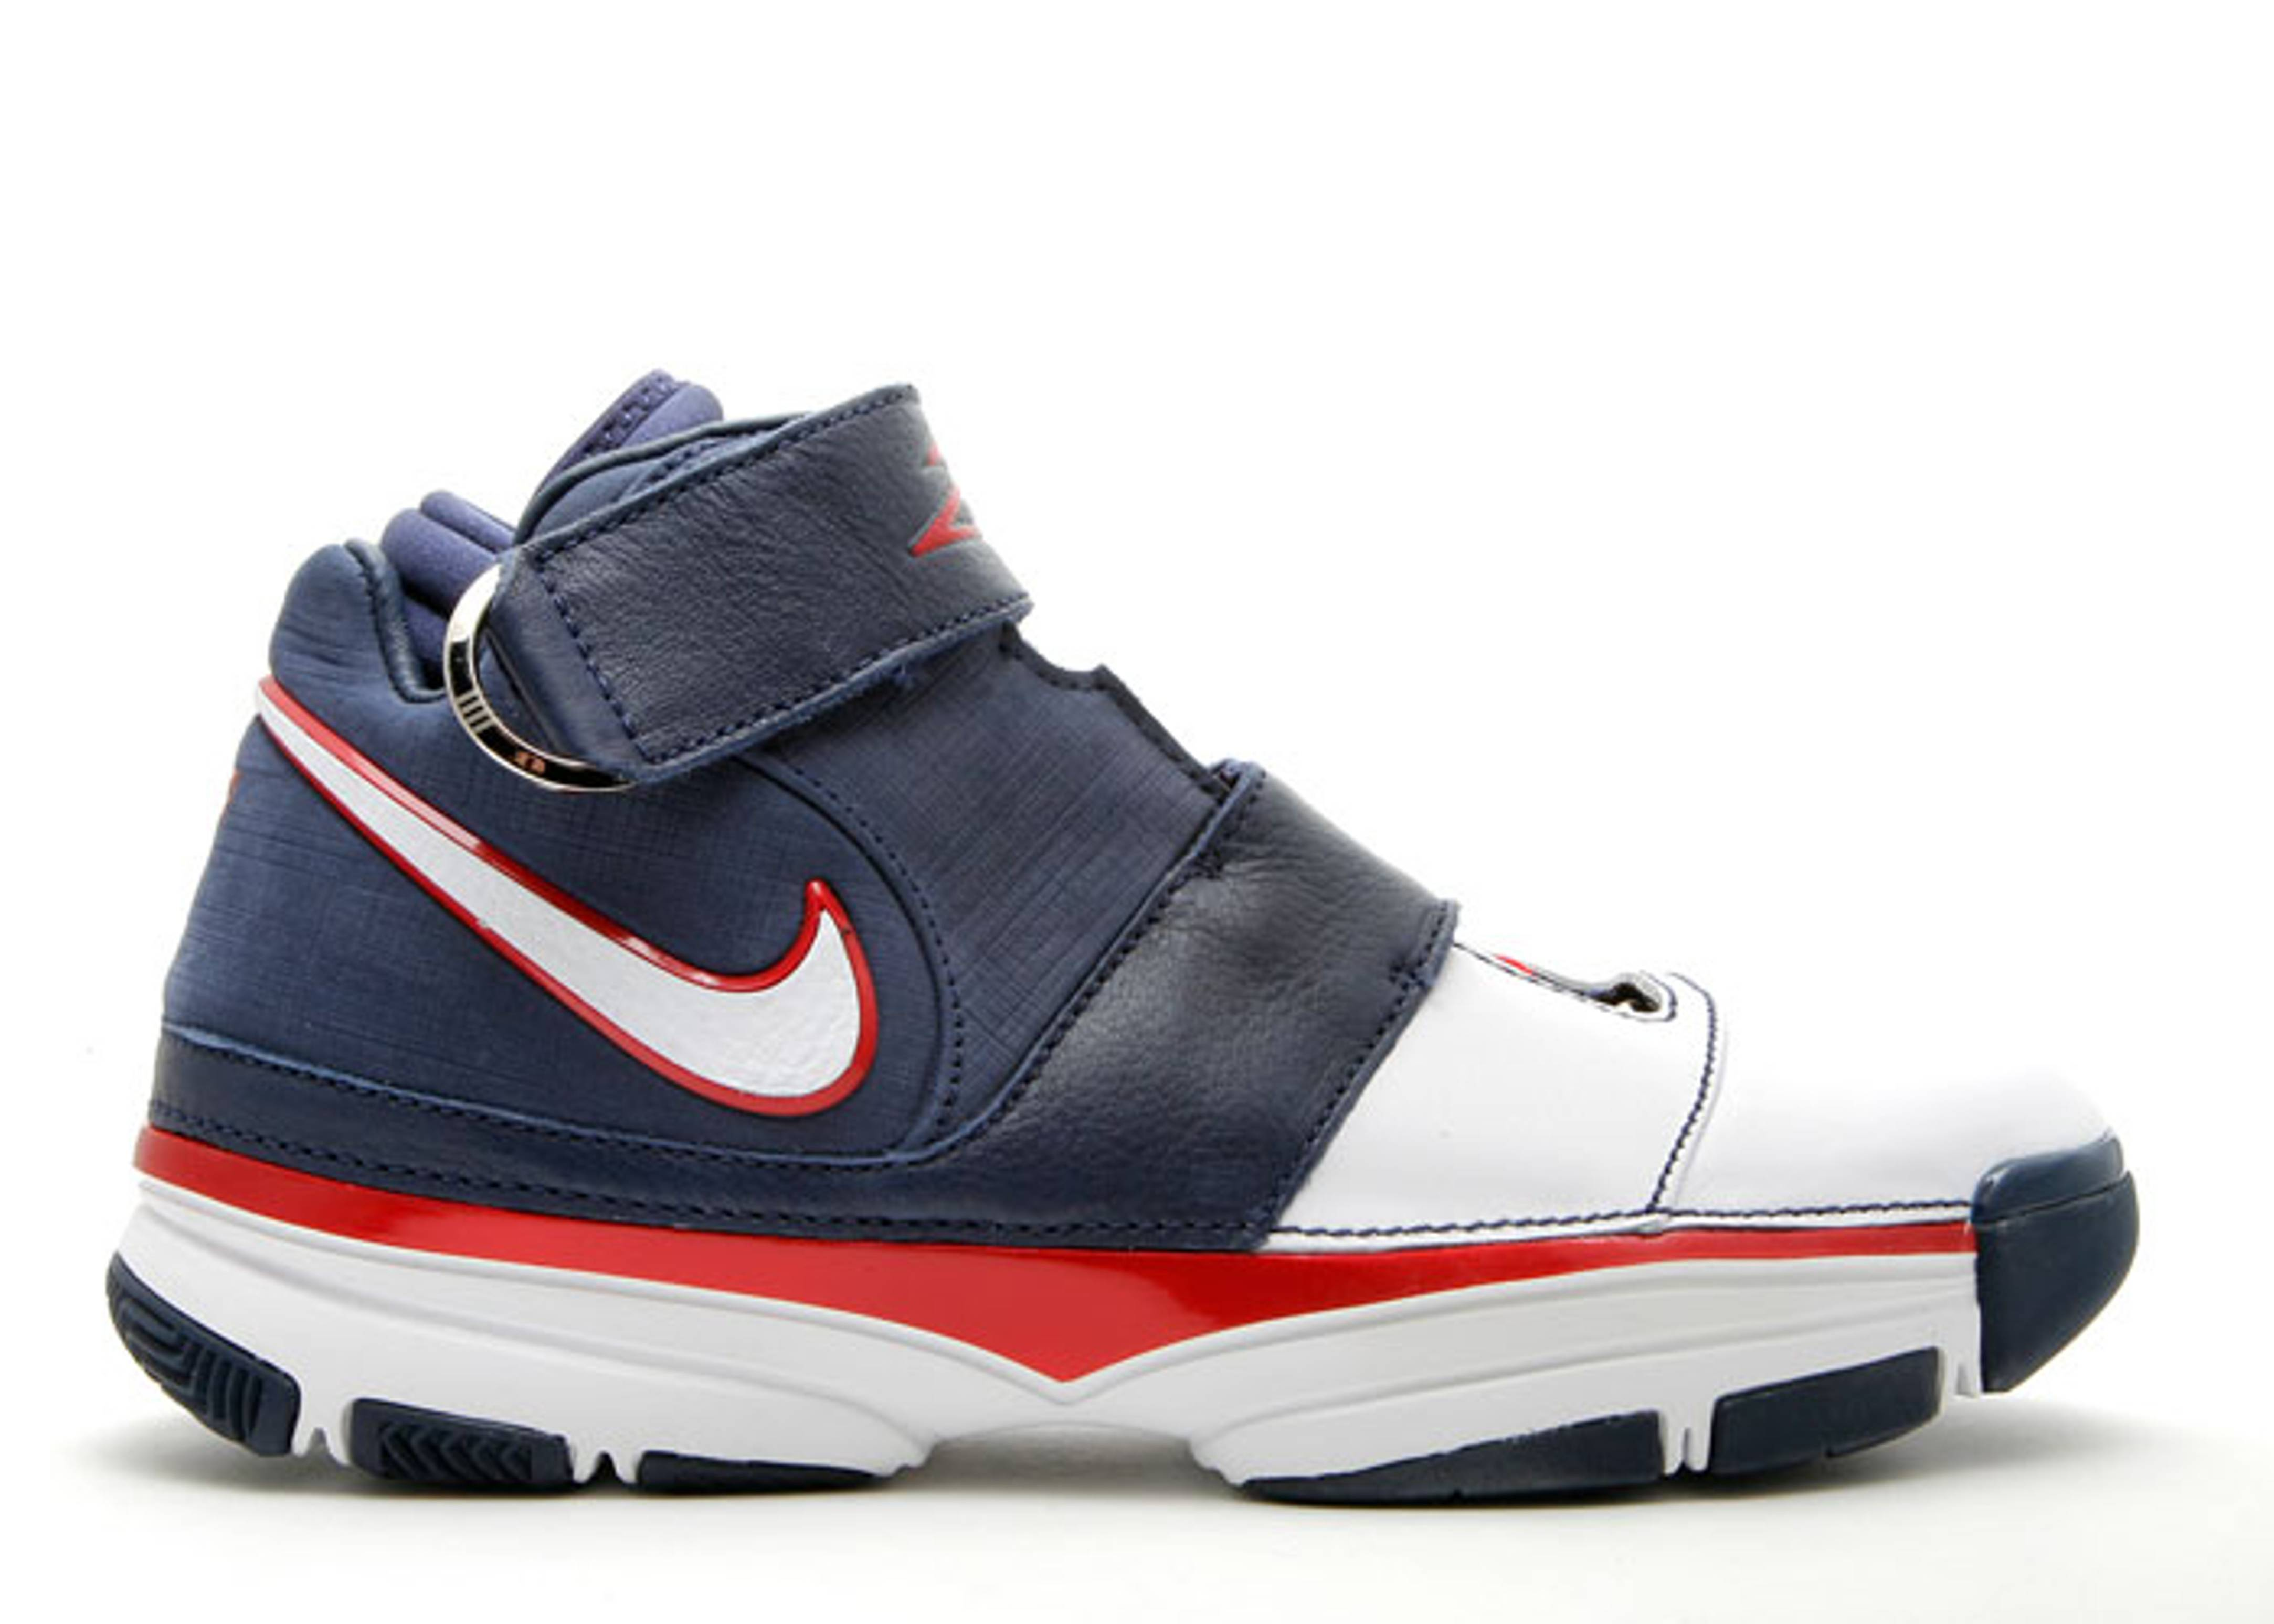 b85c8169eb30 Zoom Kobe 2 St - Nike - 316835 411 - midnight navy white-varsity red ...